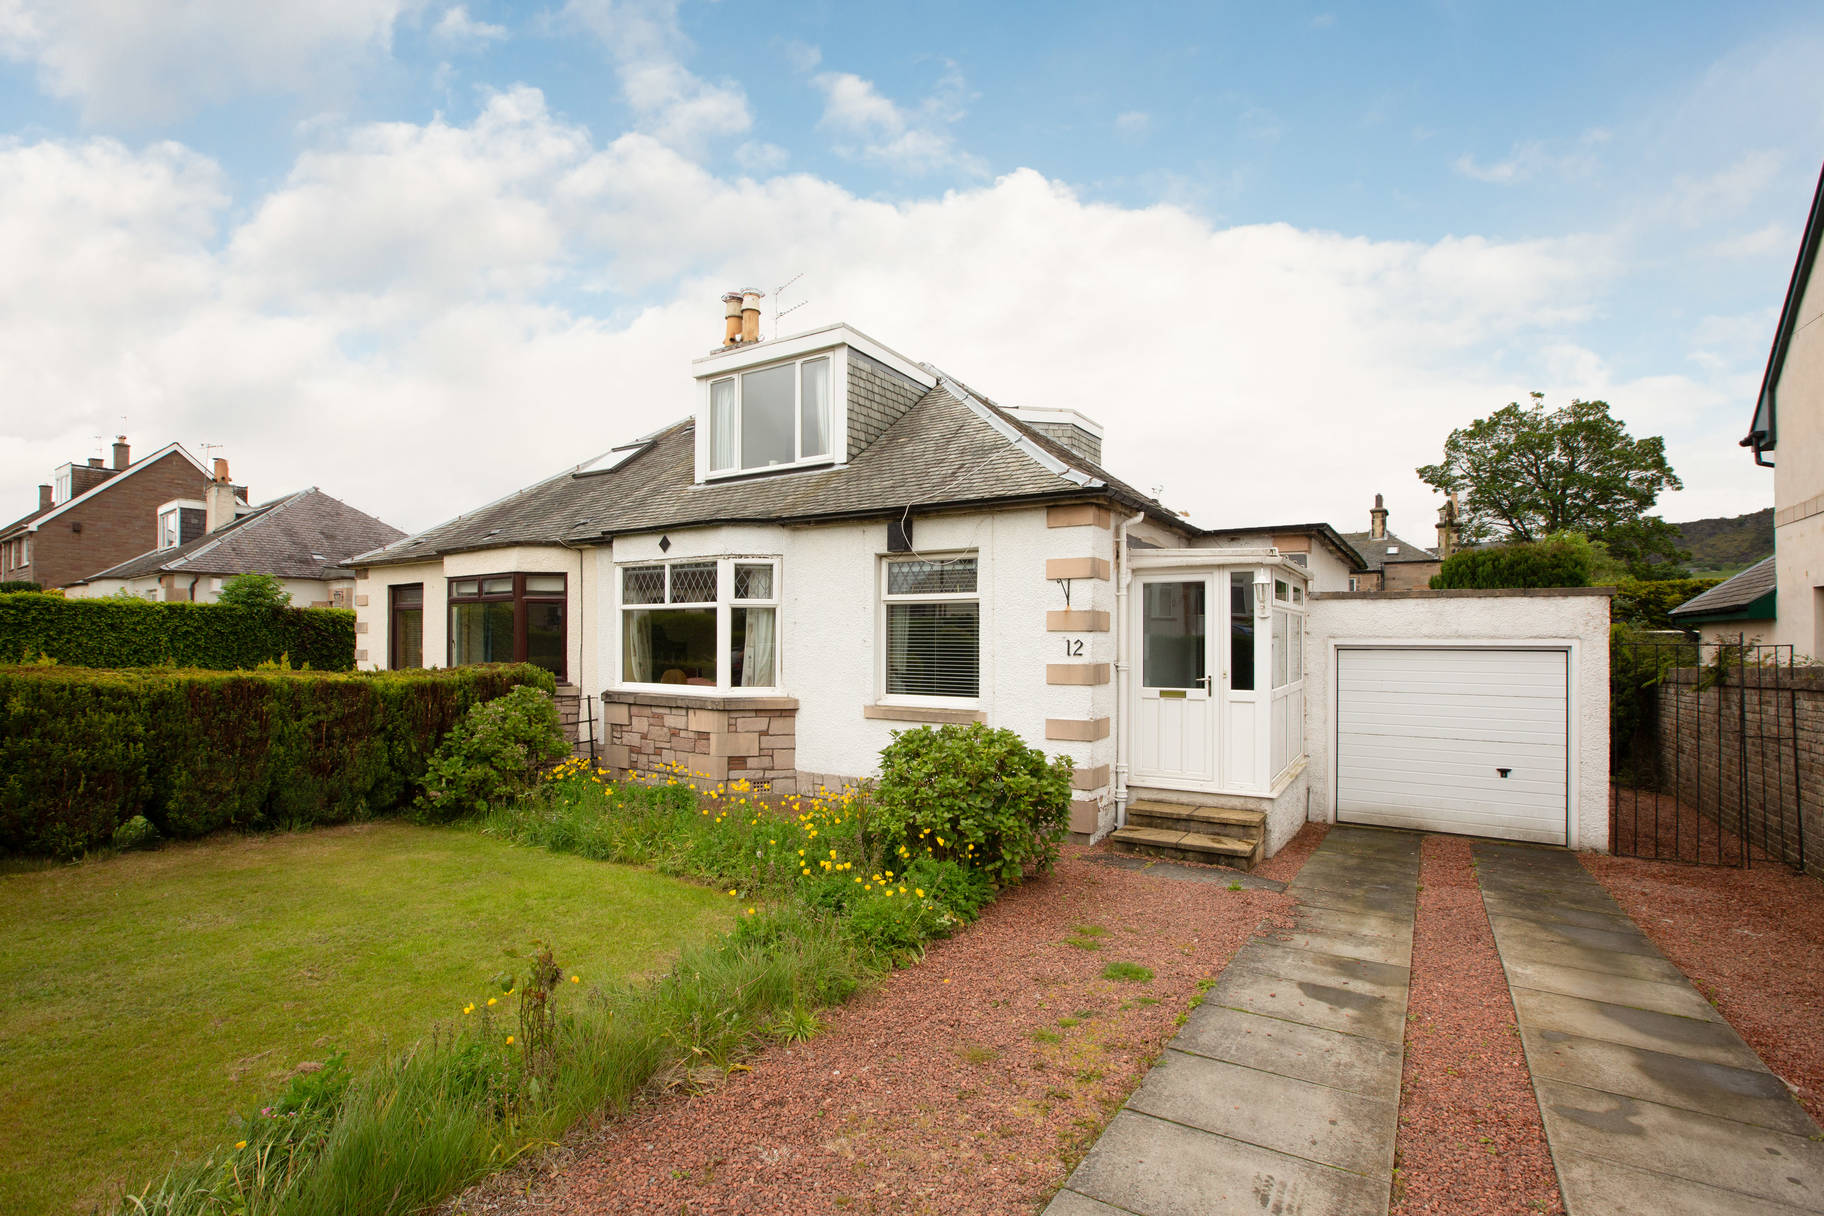 12 Woodhall Avenue, Juniper Green, Edinburgh, EH14 5BU